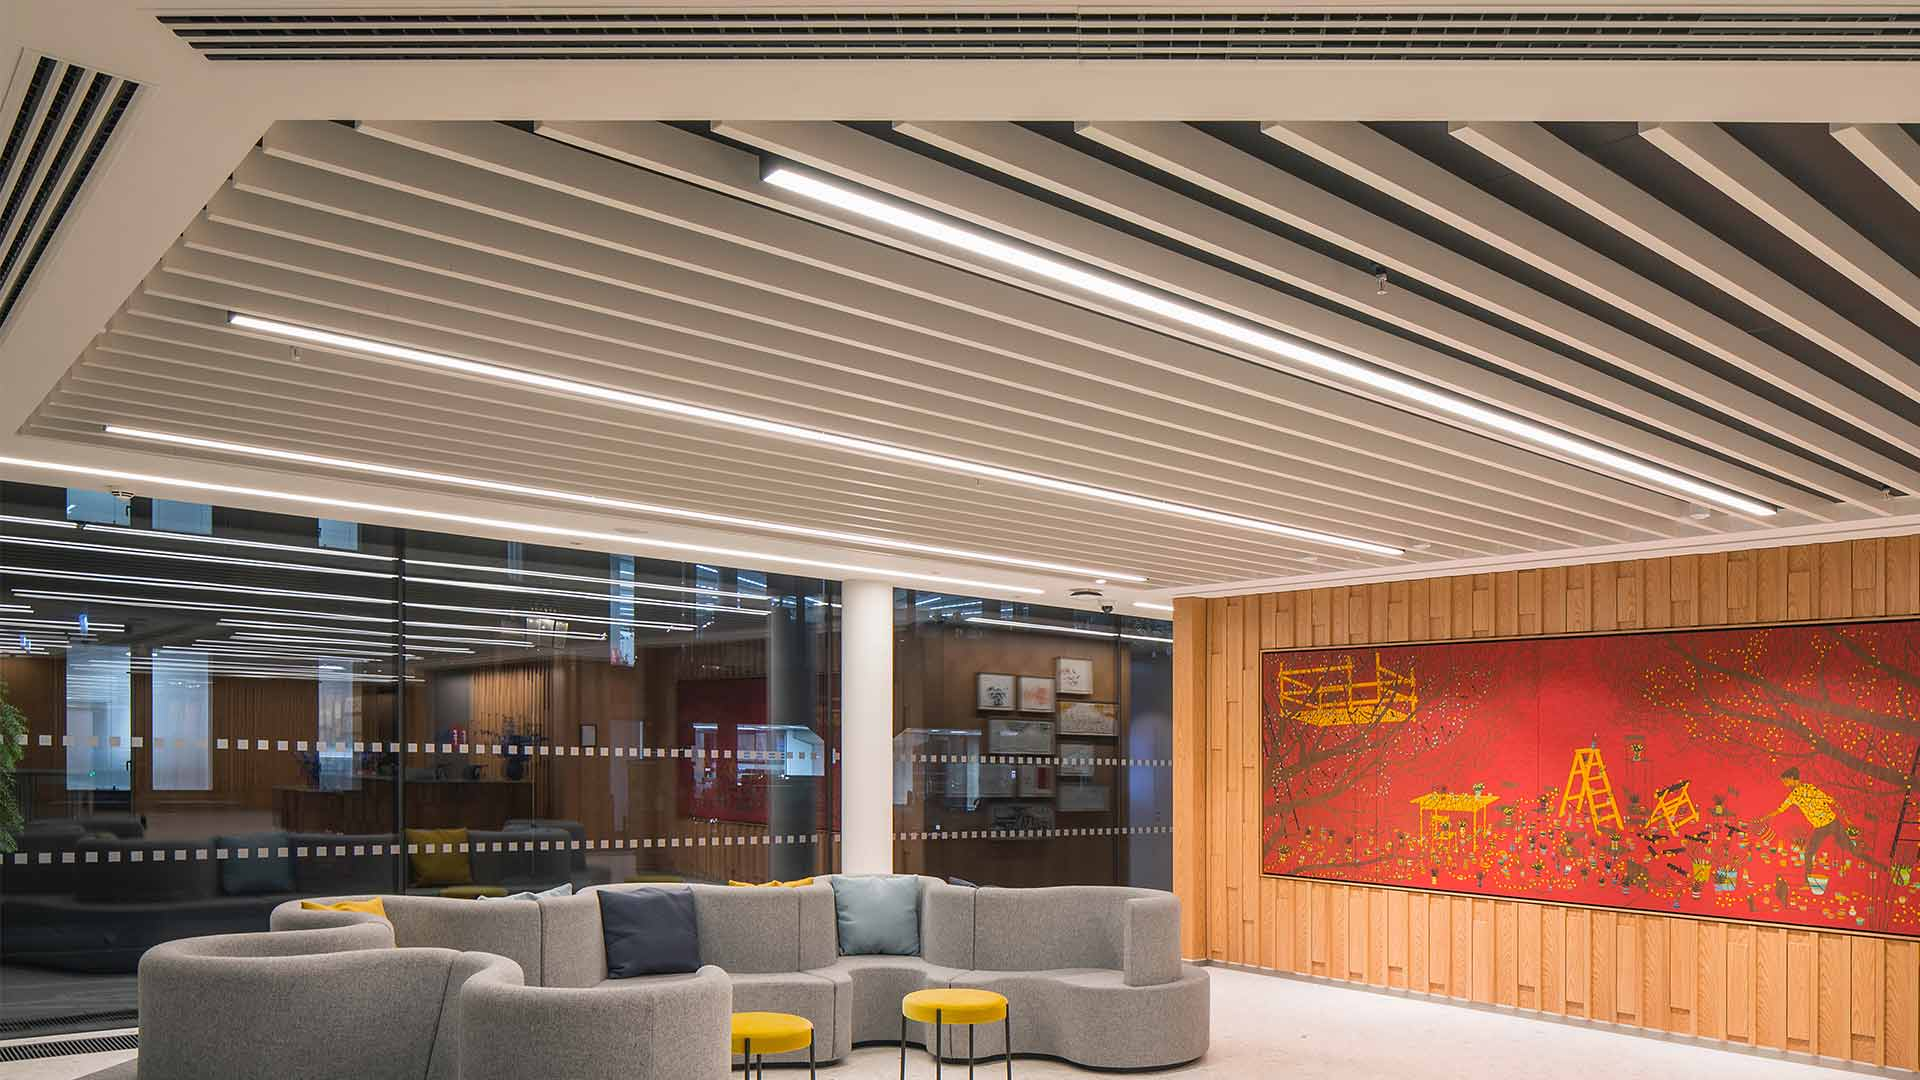 Architectural Lighting Design Office WELL Certified Design Reception Space Consultants London Nulty